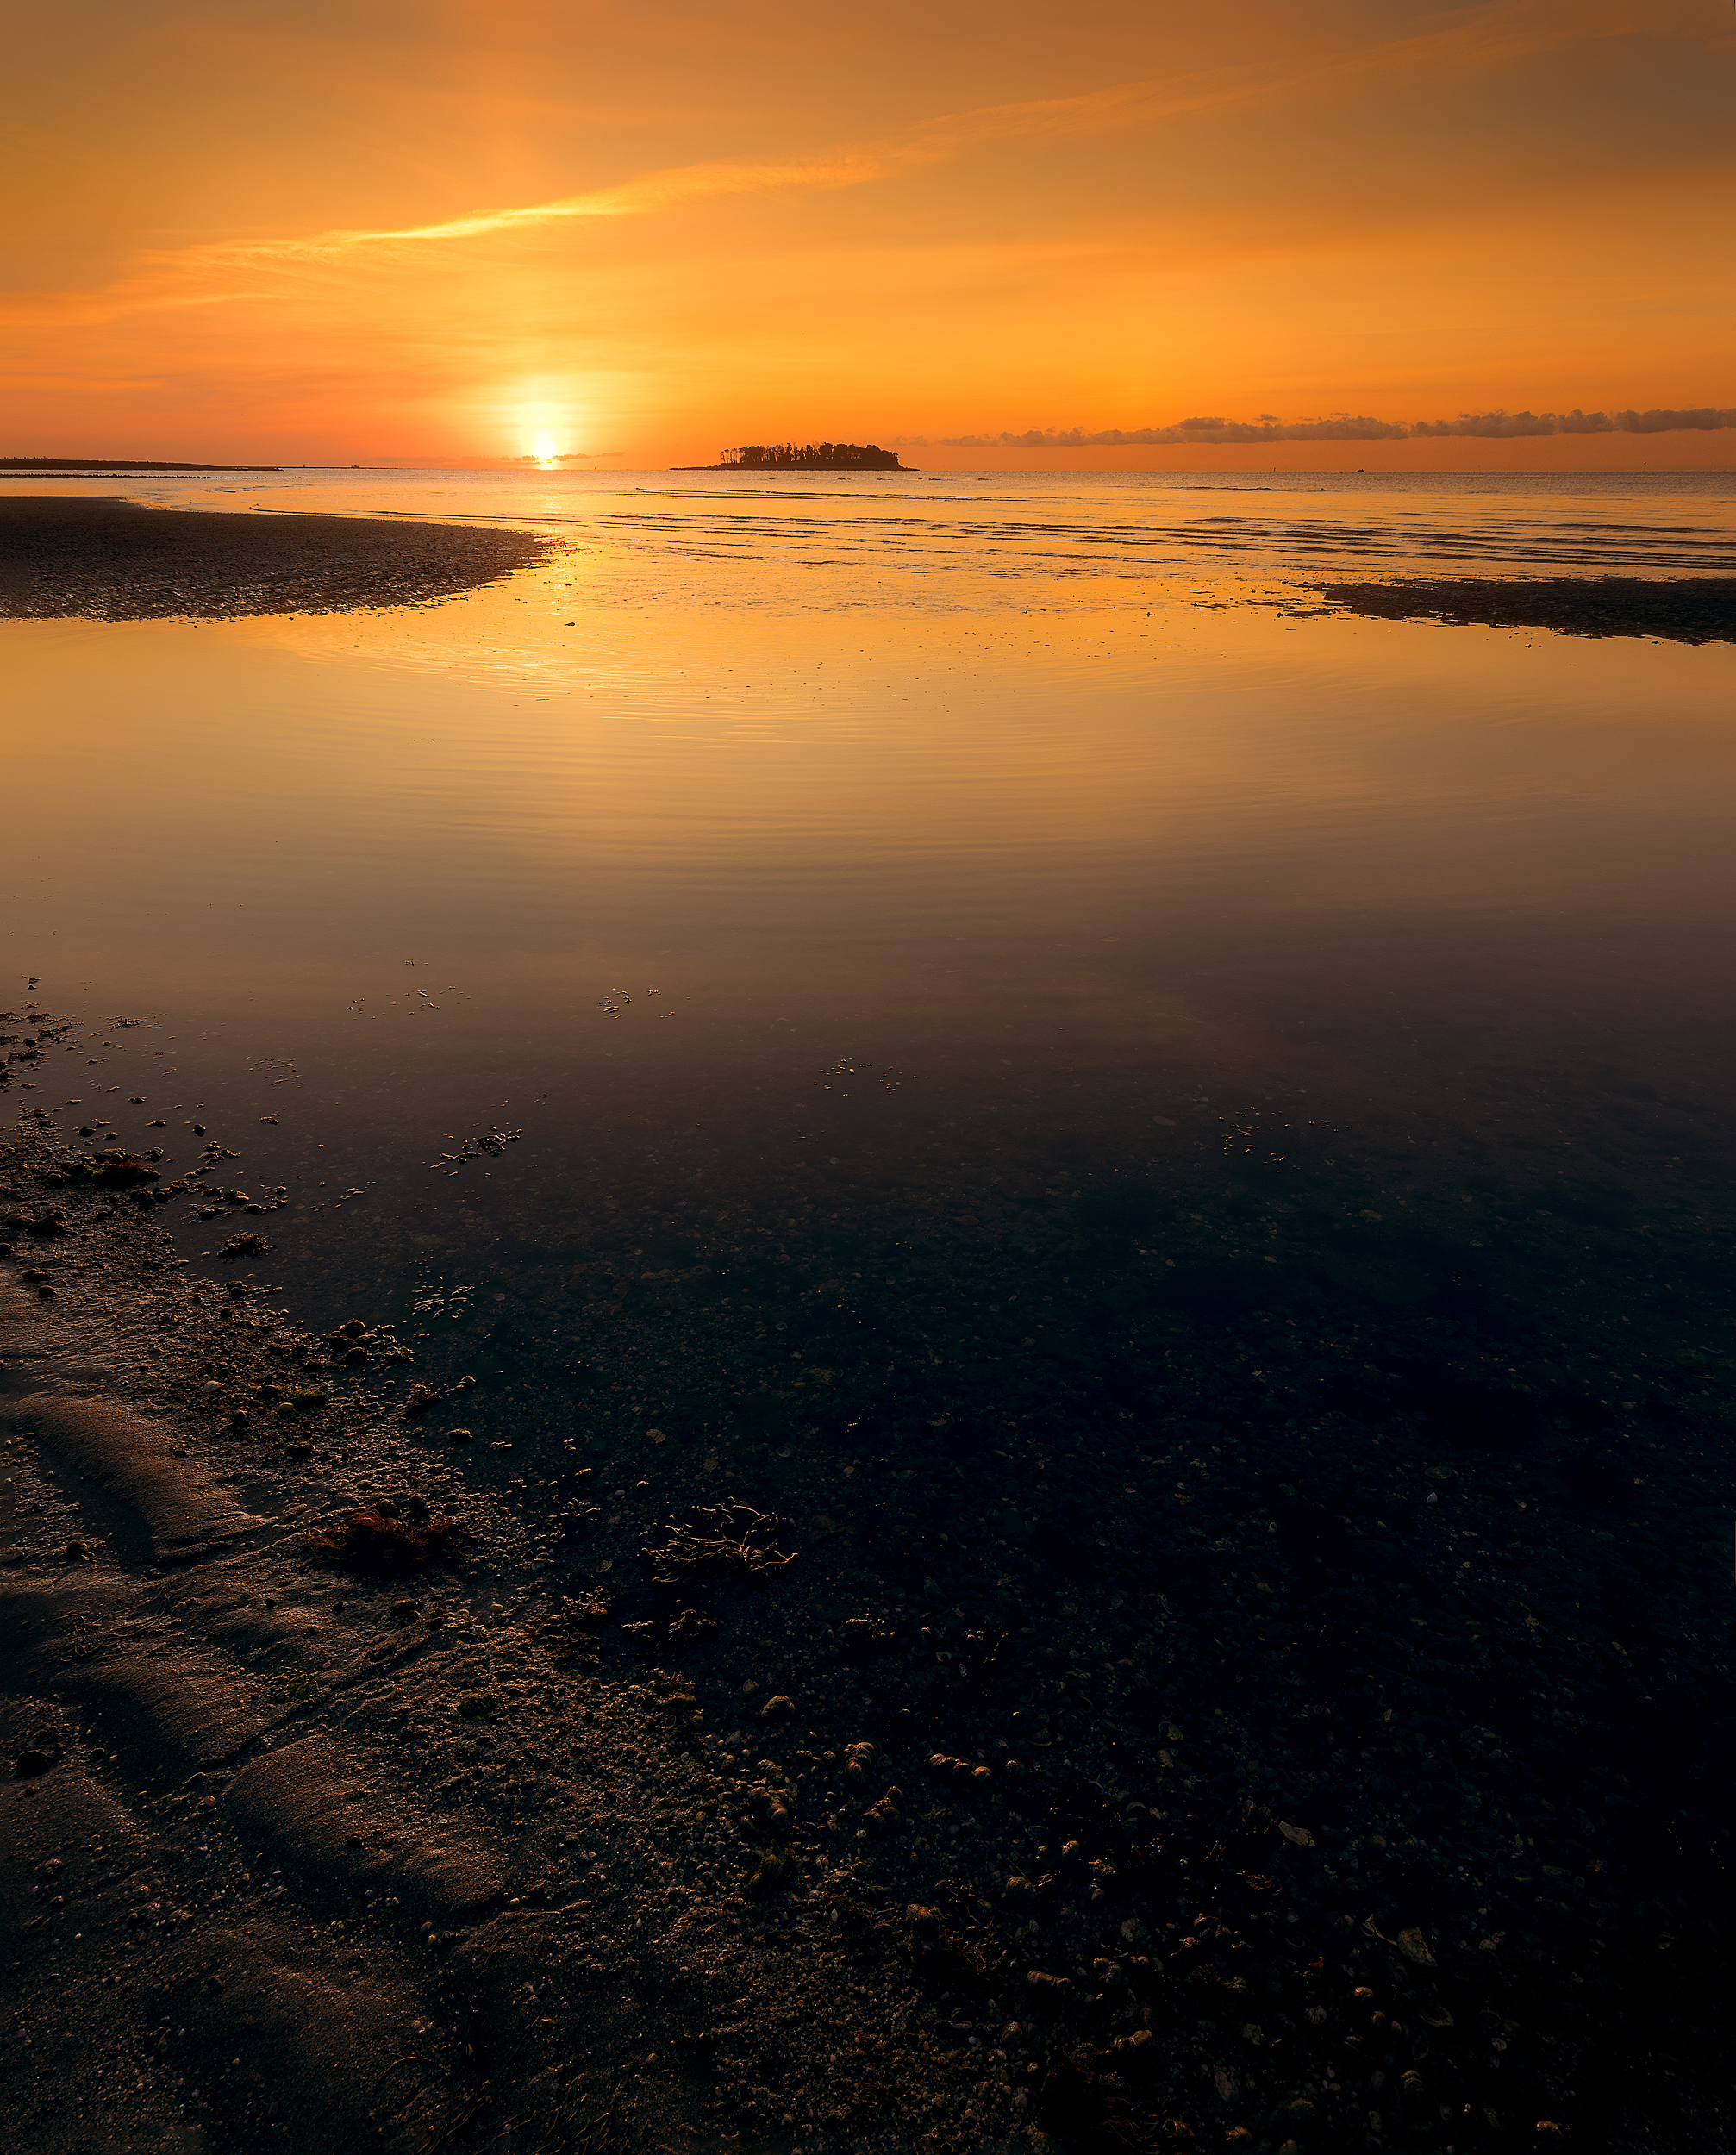 Sunrise at Silver Sands  each in Milford, Connecticut, USa.